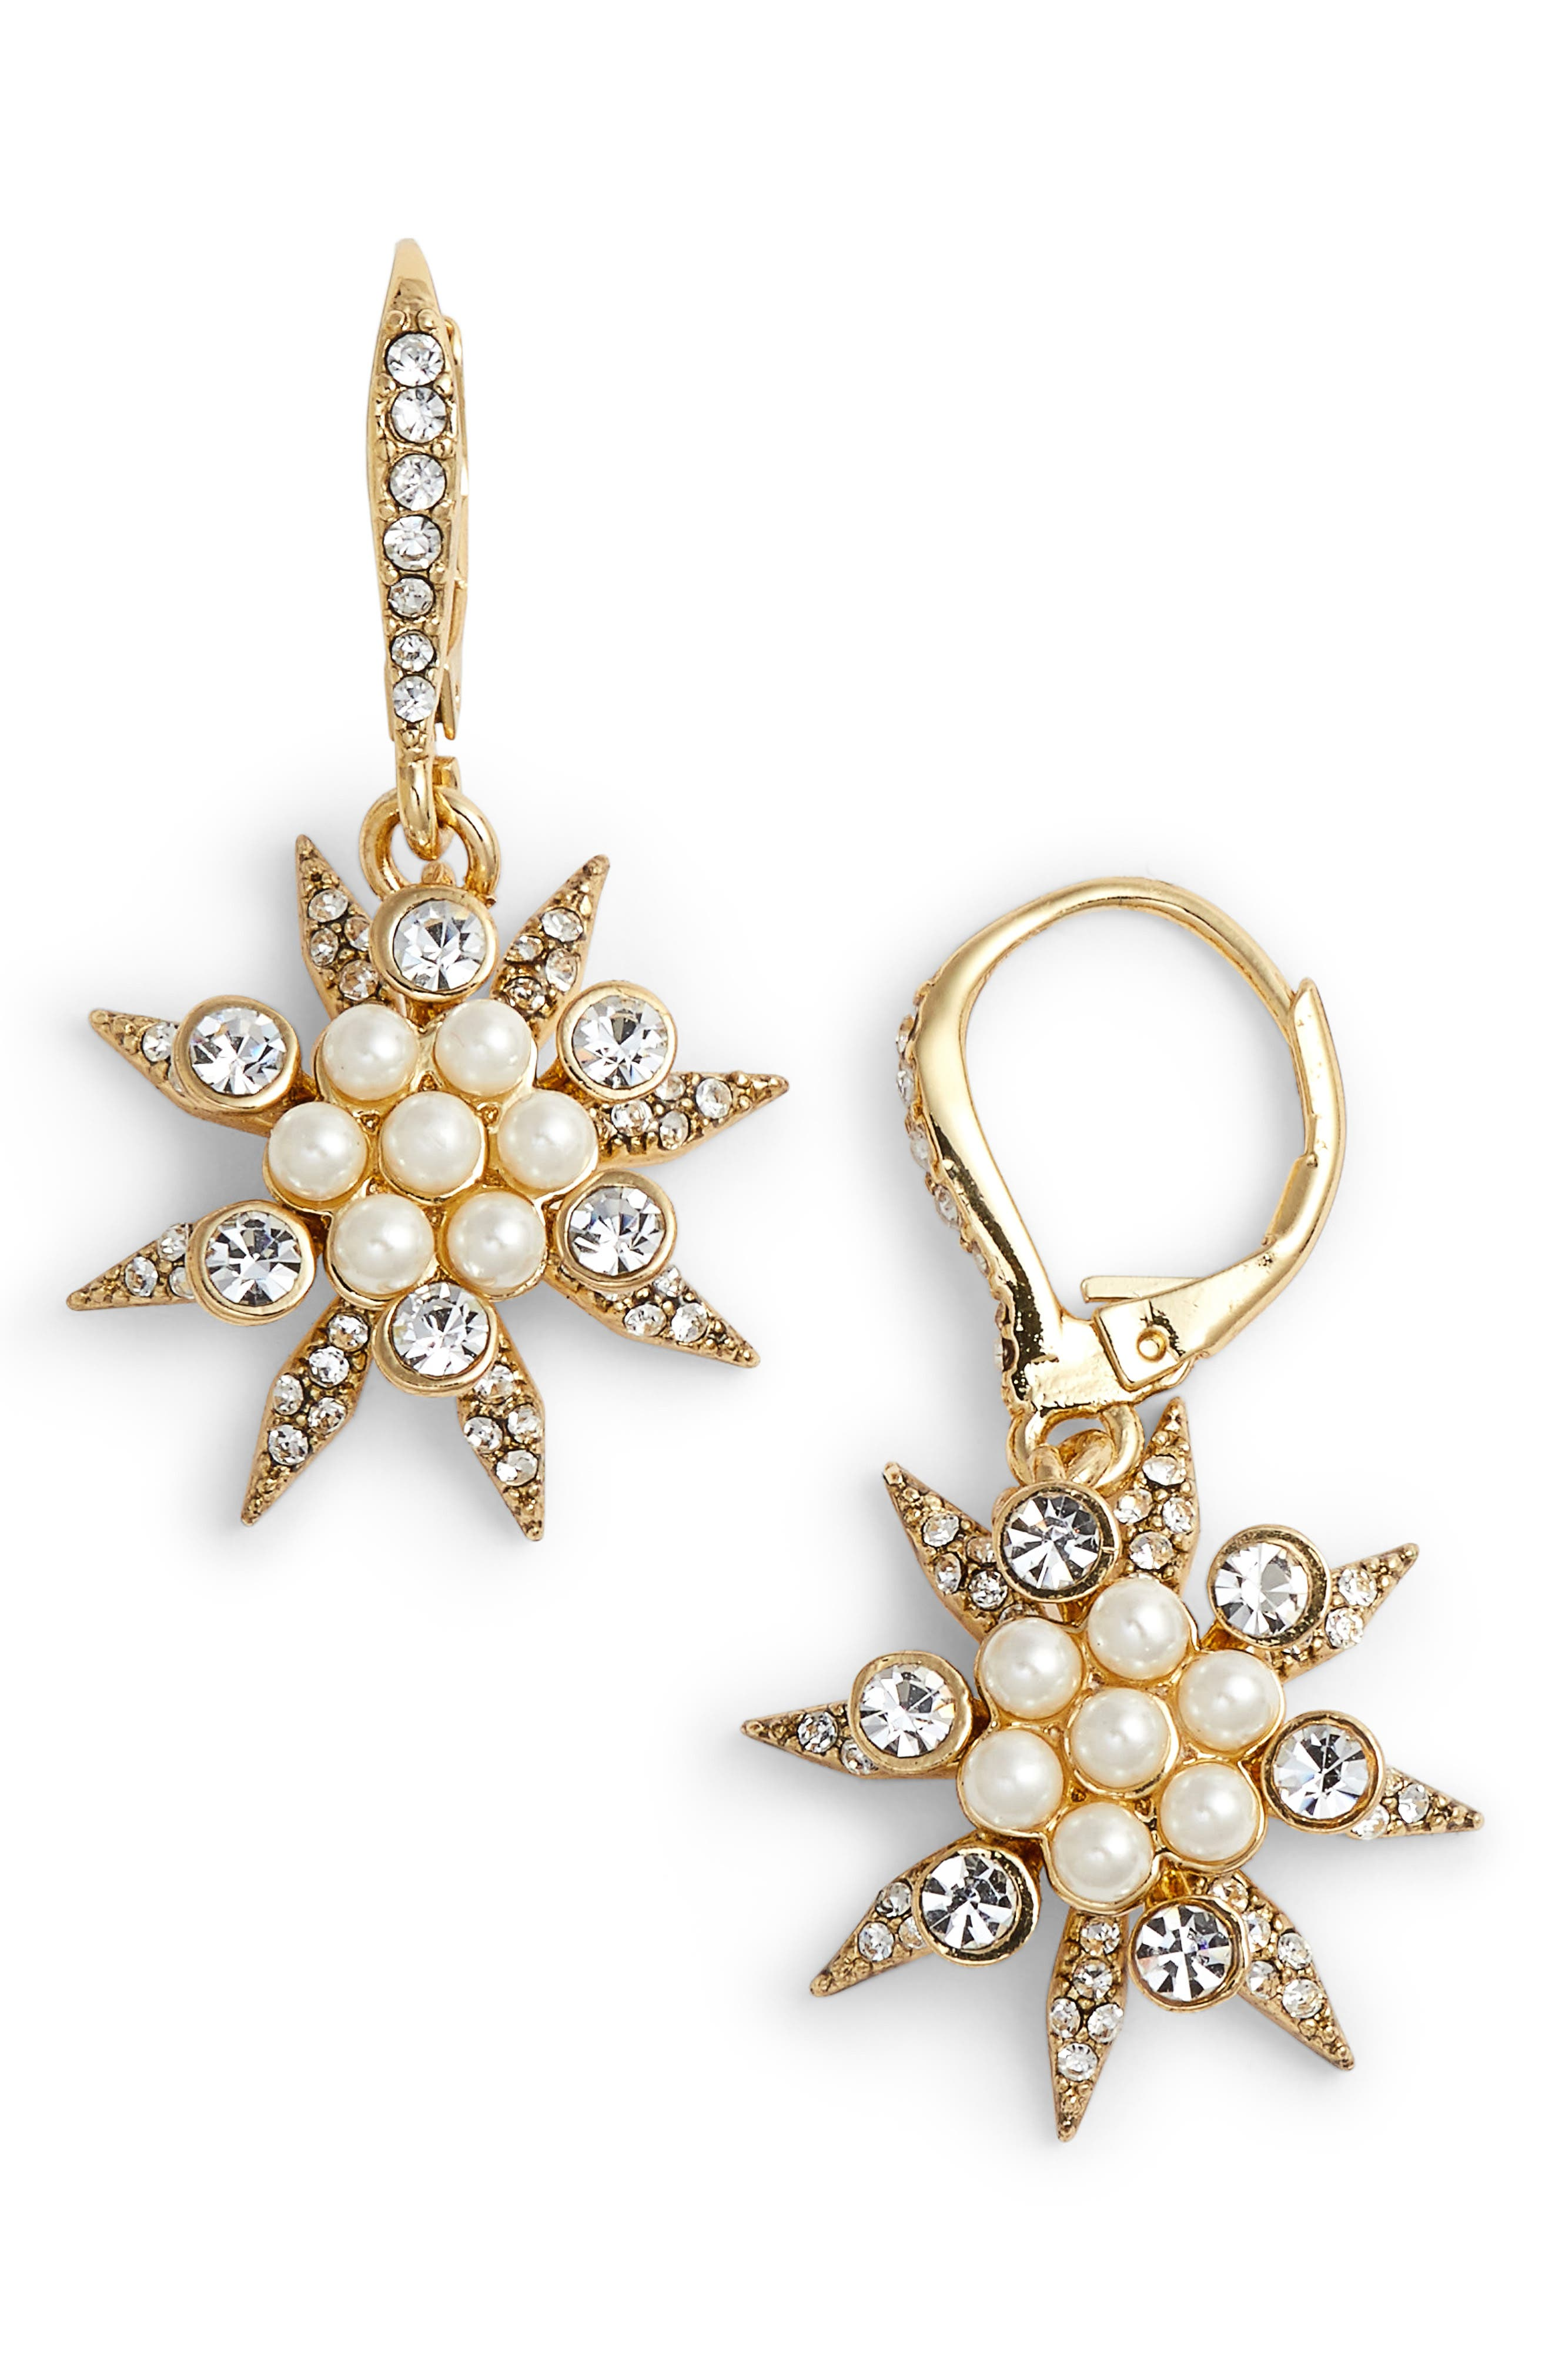 Star Cluster Drop Earrings,                         Main,                         color, Gold/ Champagne